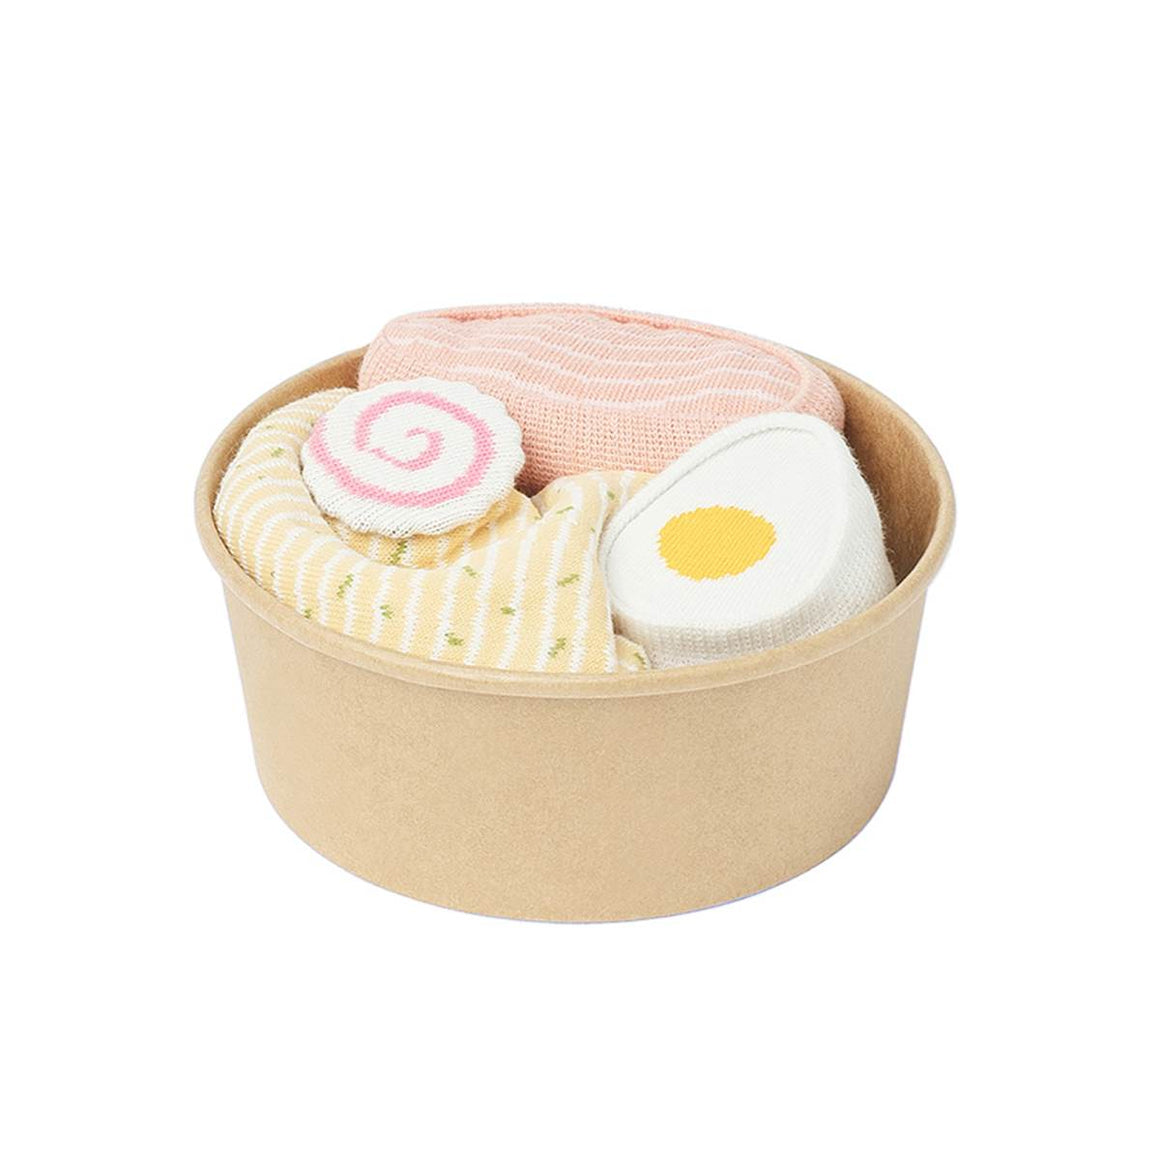 A set of two pairs of sock in multiple prints. Printed, rolled and presented in a cardboard 'bowl' to look like a bowl of Ramen, featuring noodles, egg, pork and a pink spiral radish.